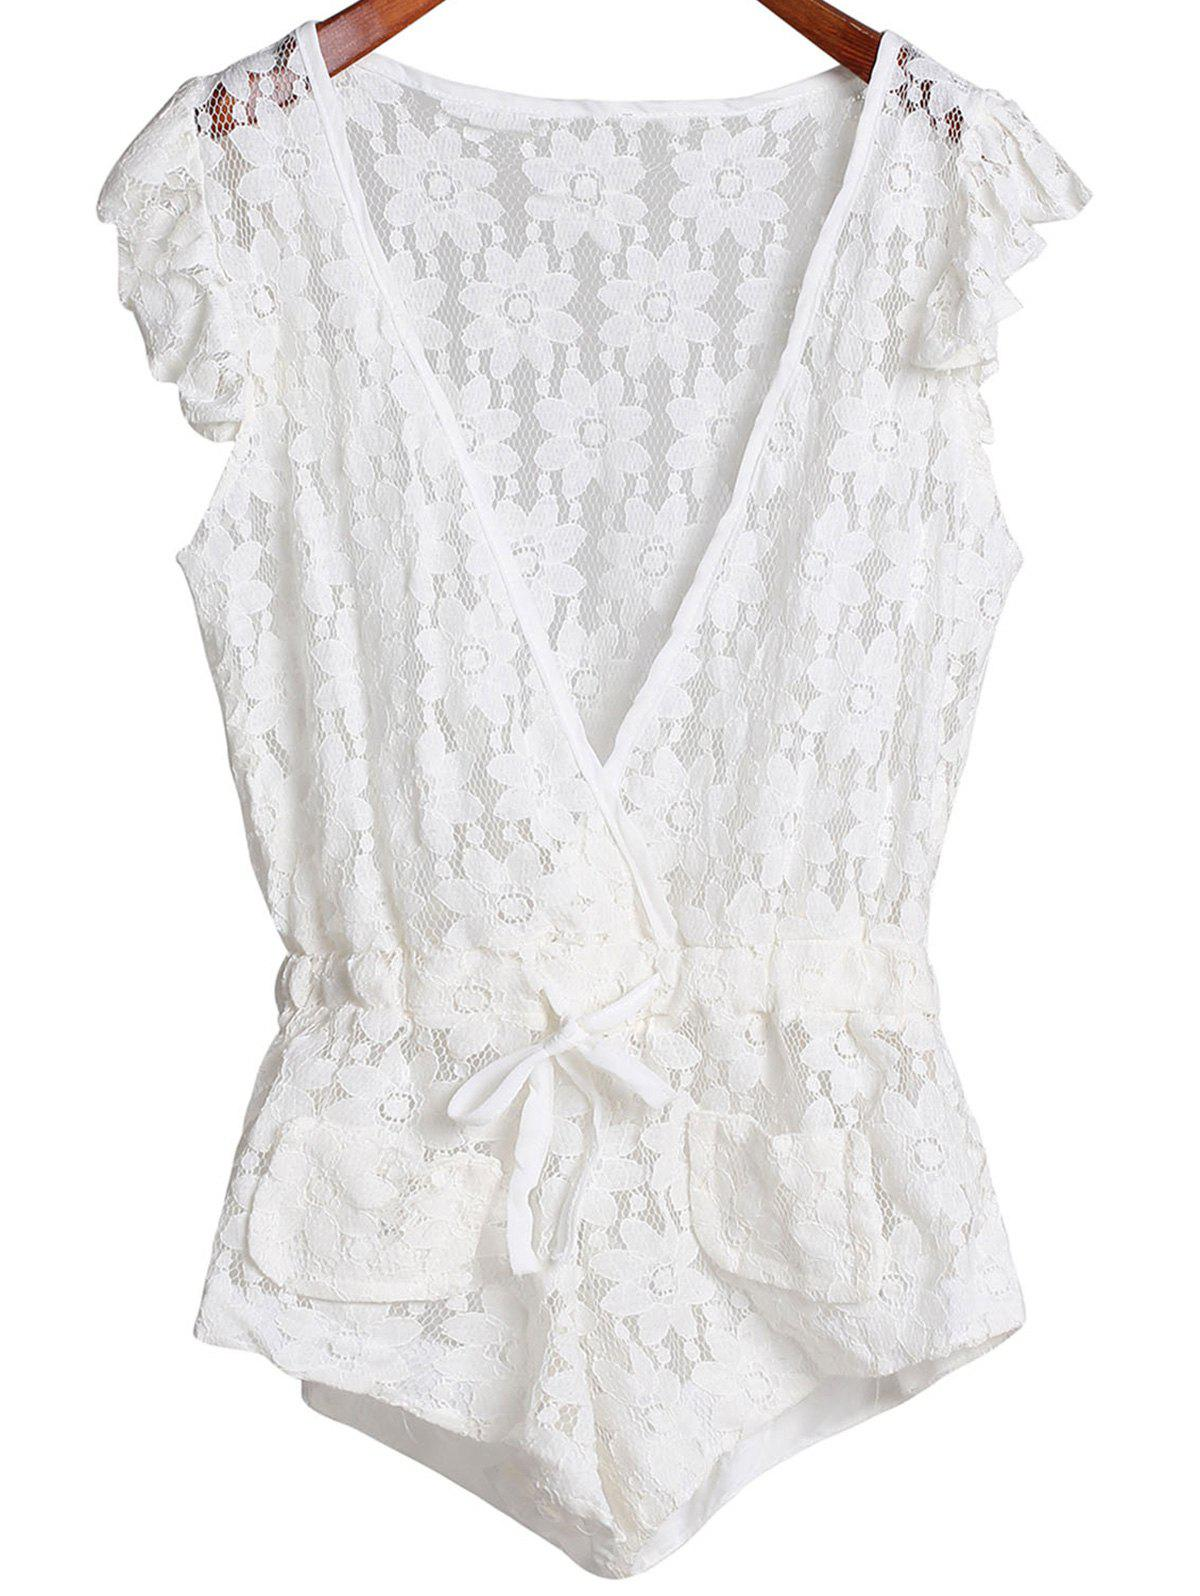 Sleeveless Plunging Neck Cut Out Women's Lace Romper - WHITE S